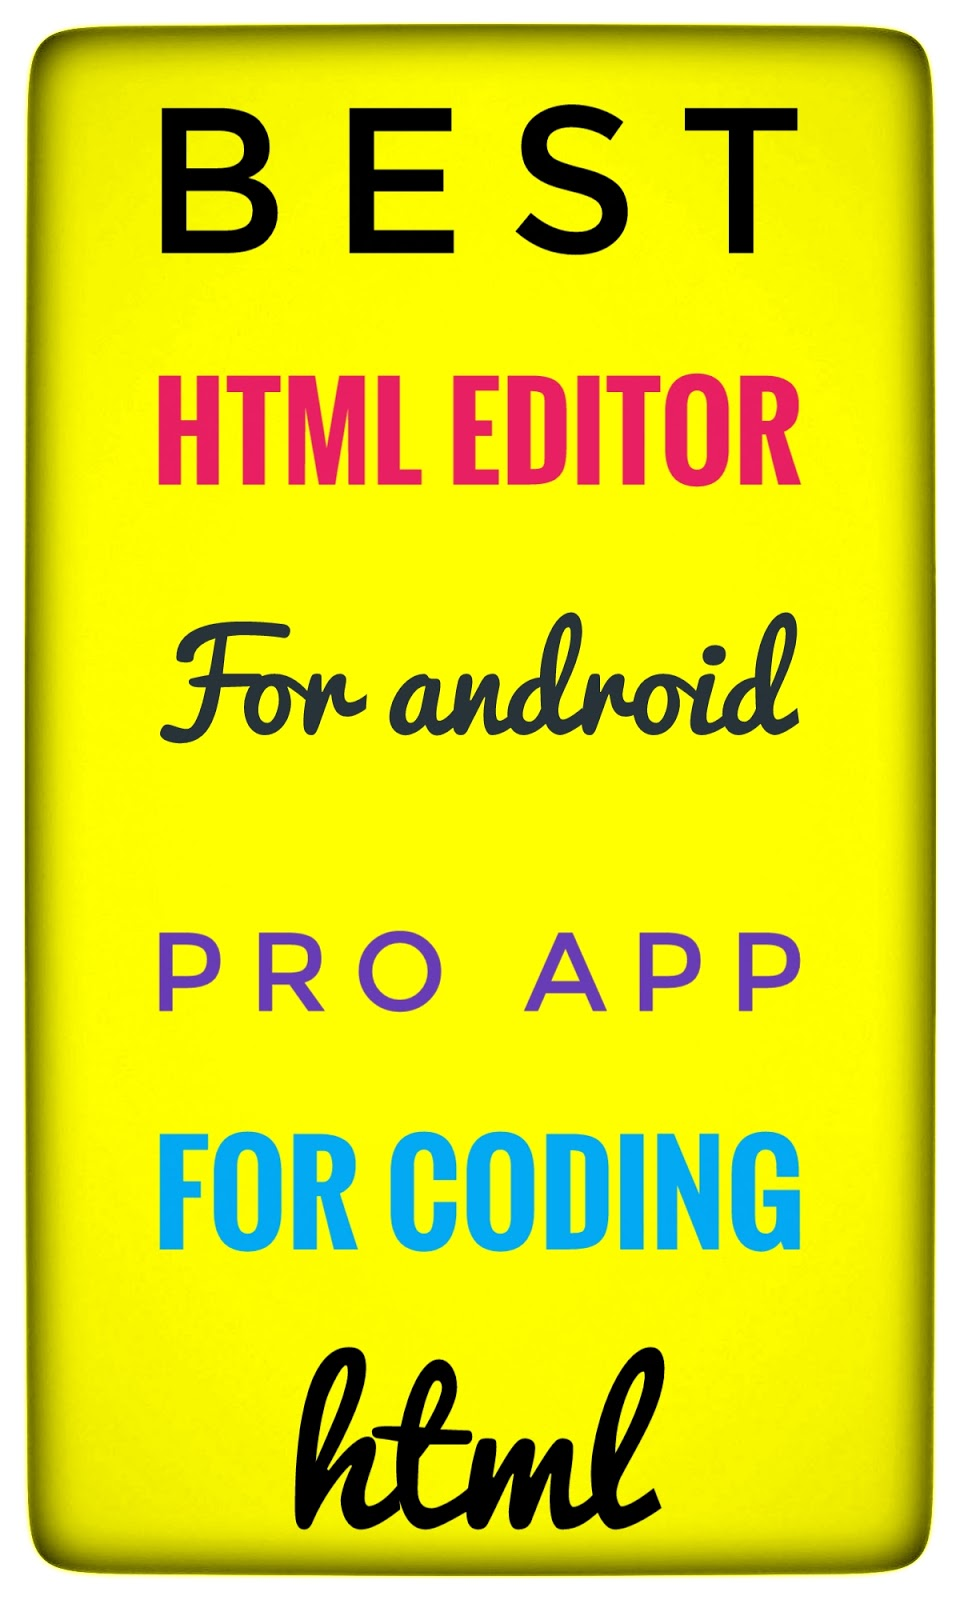 Best html editor for android